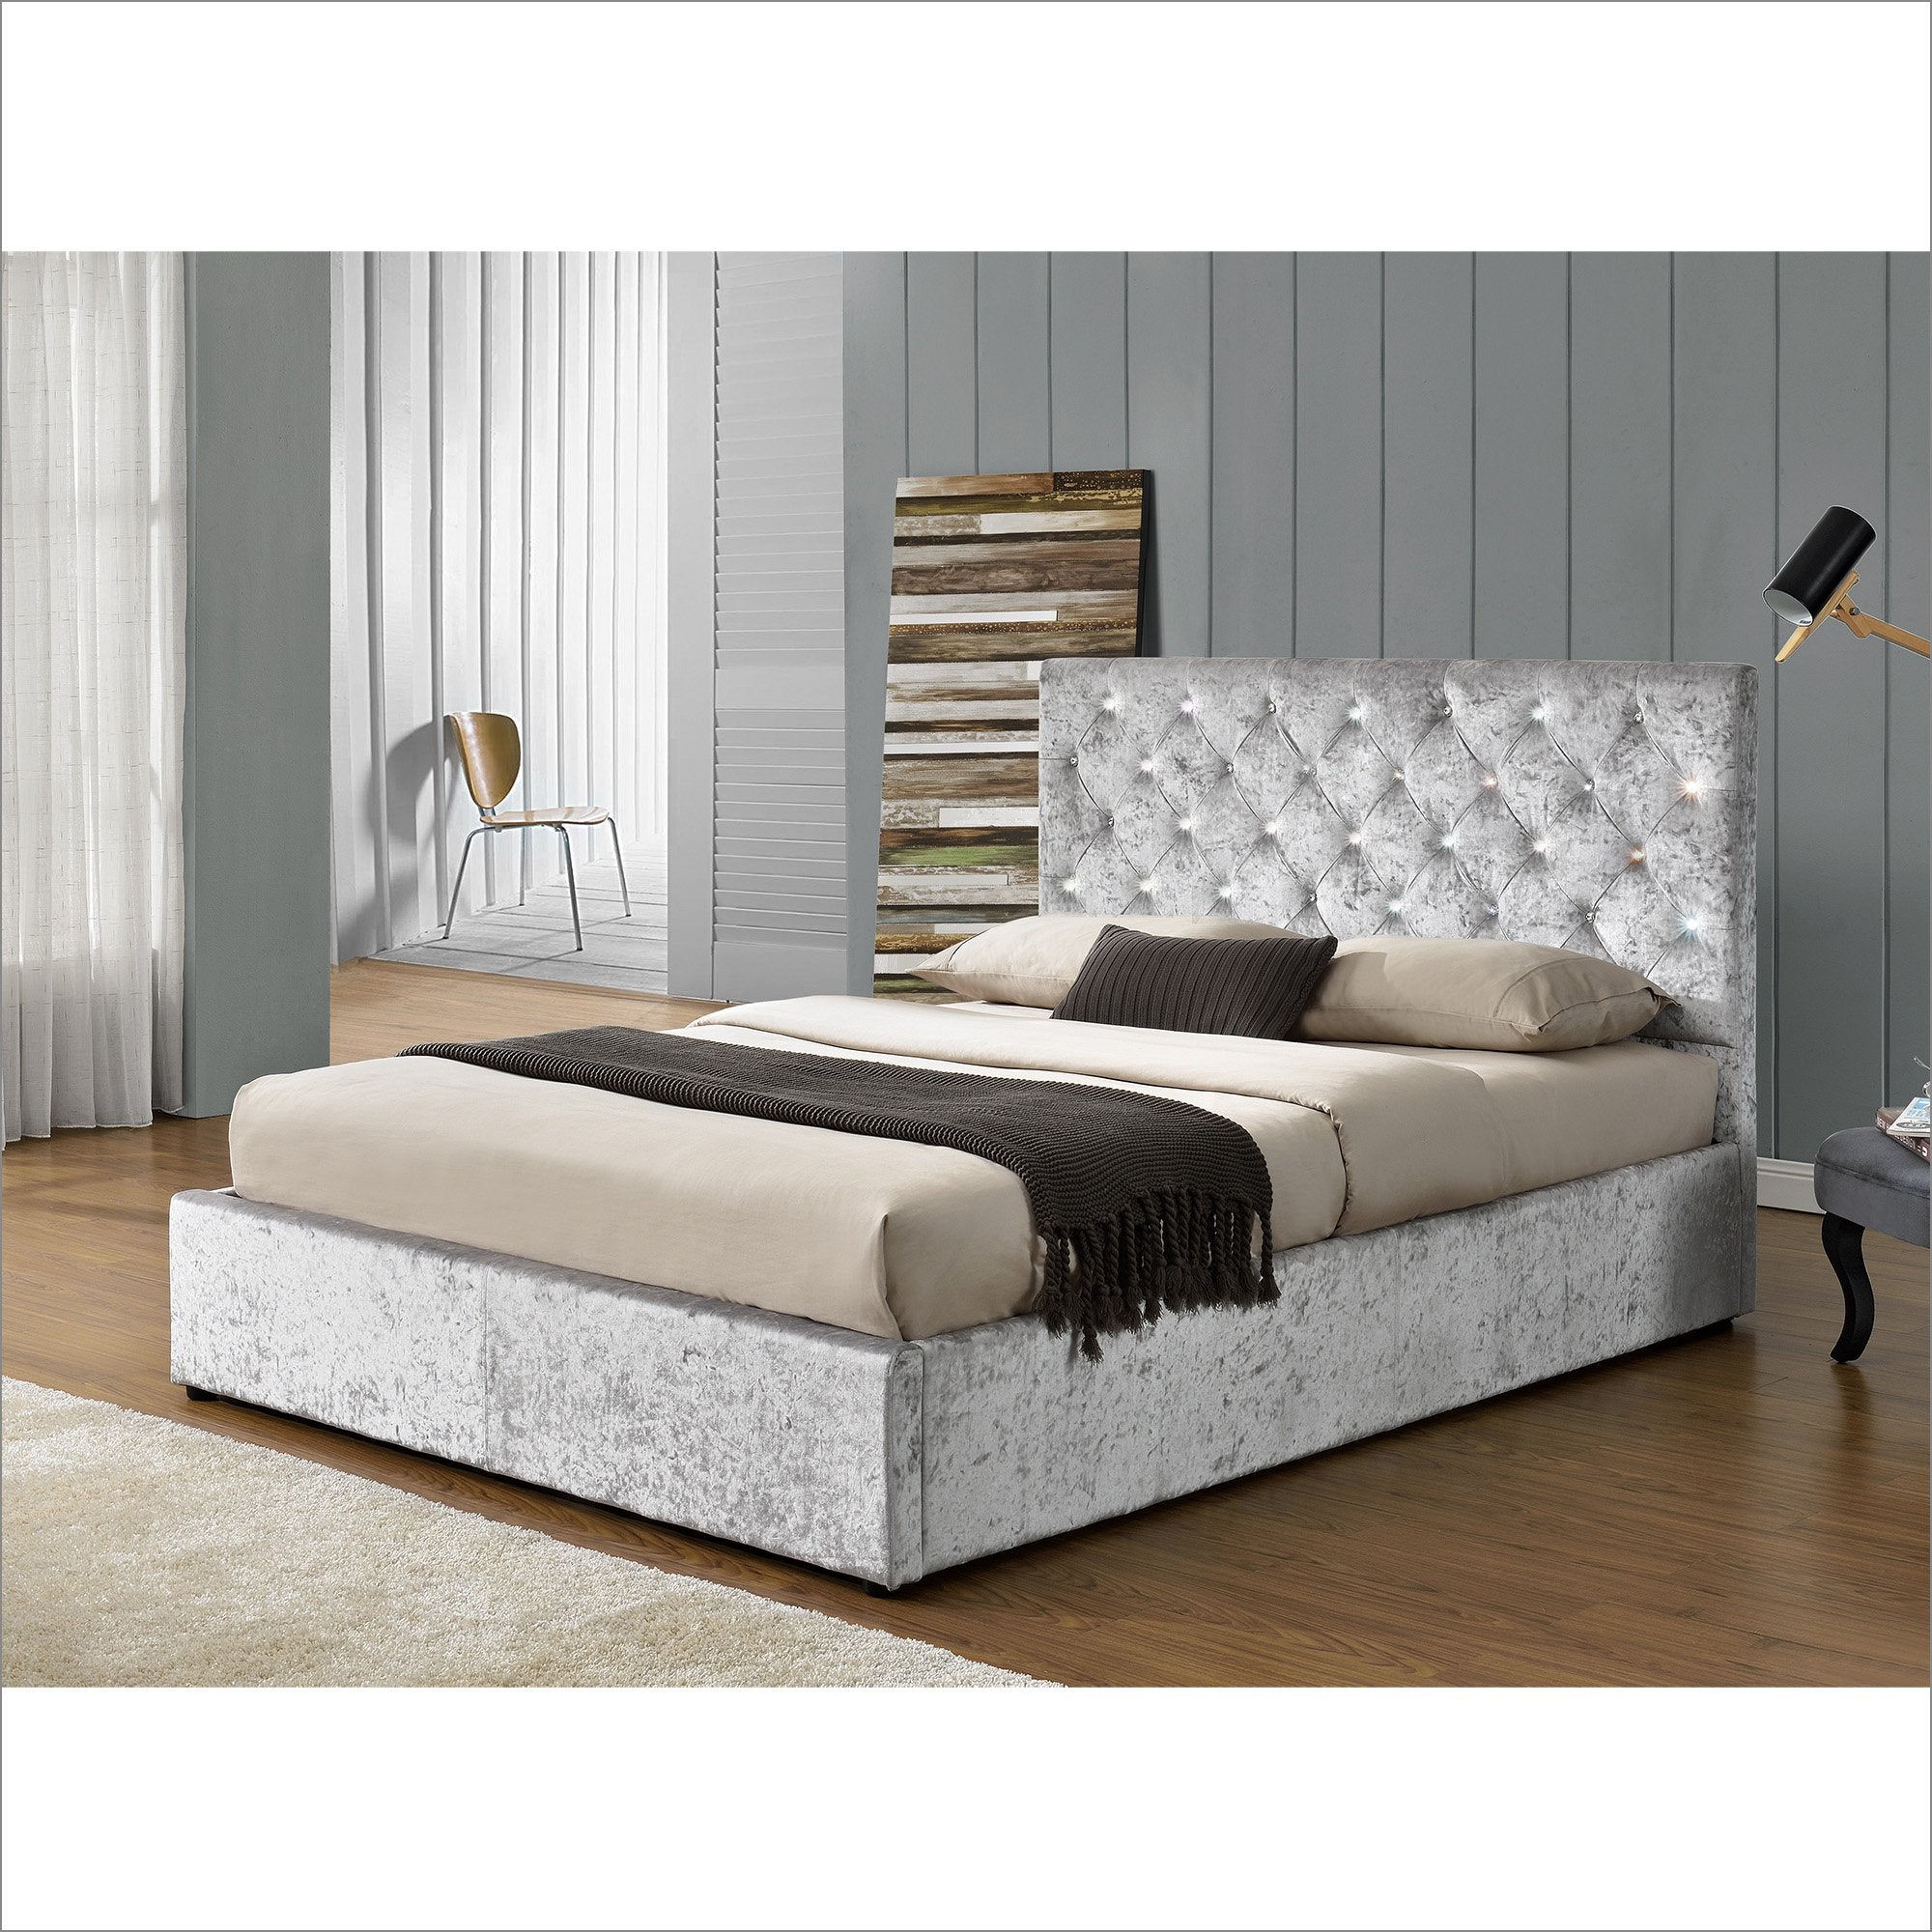 AQUILA Crushed Velvet Upholstered Bed Frame with Diamante Headboard, Silver